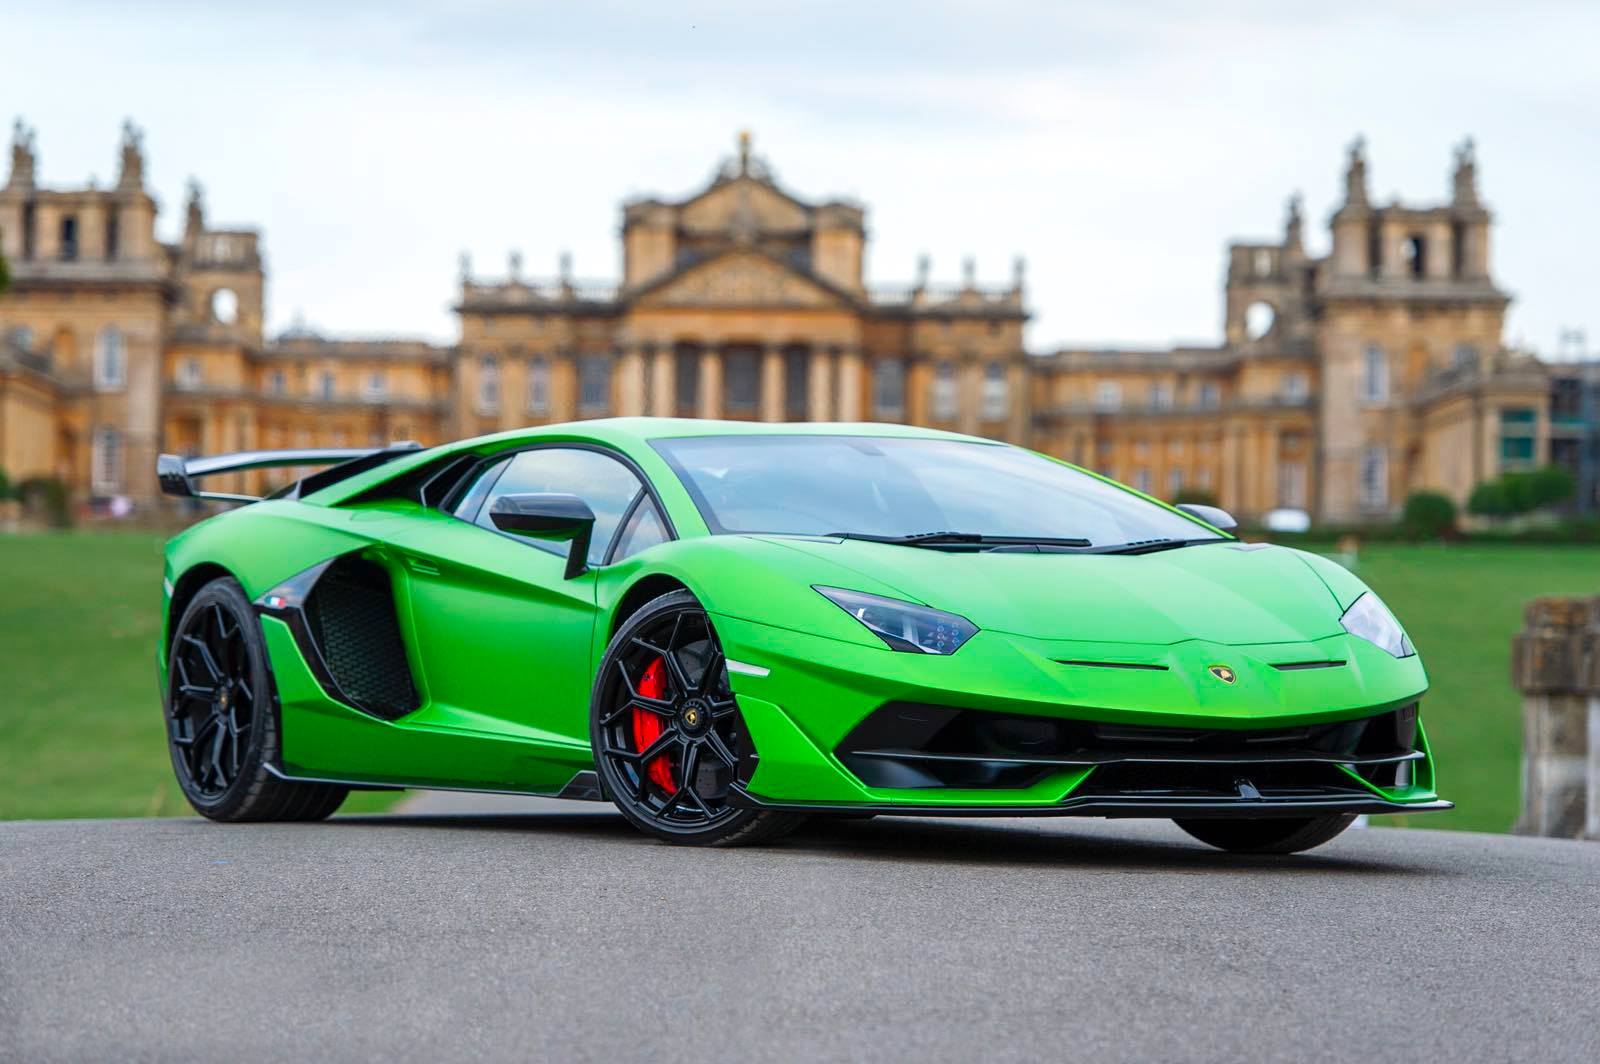 Lamborghini Aventador Svj Pricing For South Africa